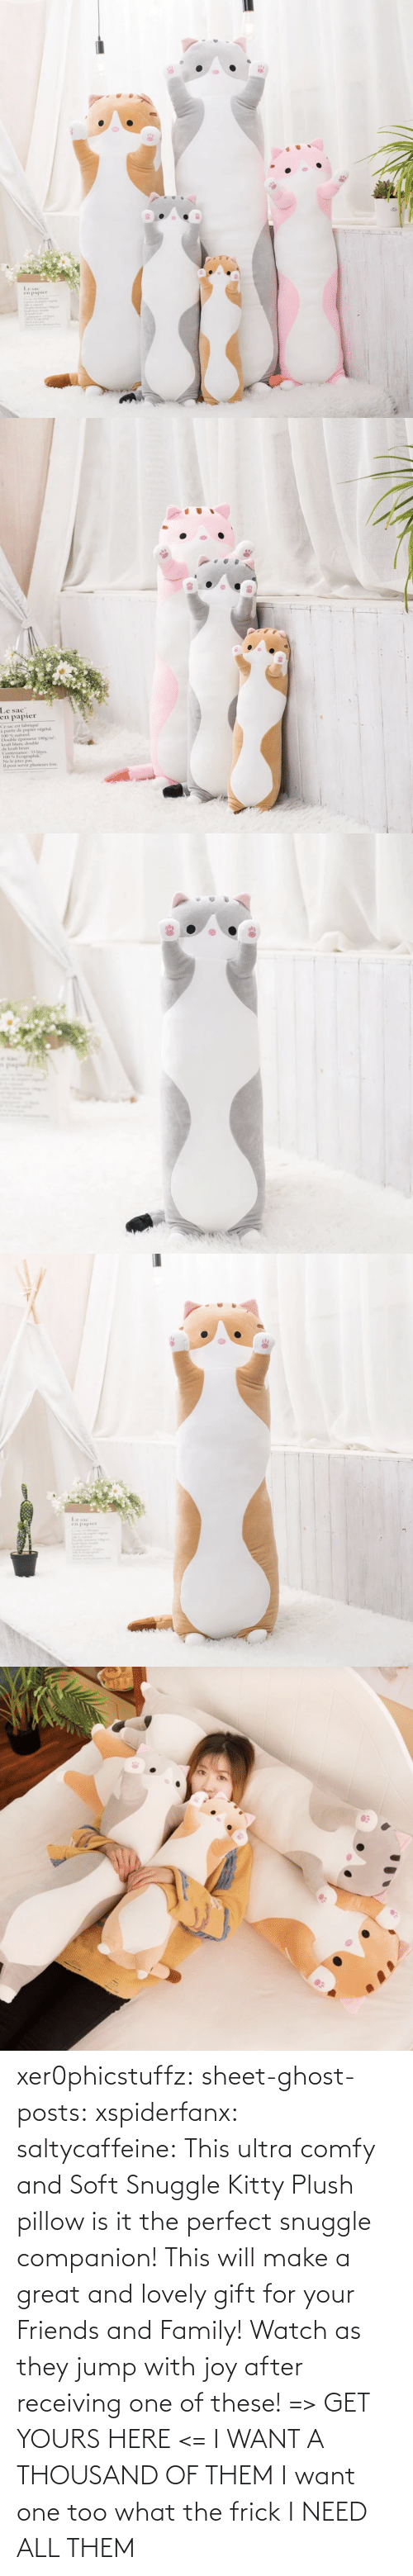 Posts: xer0phicstuffz:  sheet-ghost-posts: xspiderfanx:  saltycaffeine:  This ultra comfy and Soft Snuggle Kitty Plush pillow is it the perfect snuggle companion! This will make a great and lovely gift for your Friends and Family! Watch as they jump with joy after receiving one of these! => GET YOURS HERE <=    I WANT A THOUSAND OF THEM  I want one too what the frick    I NEED ALL THEM